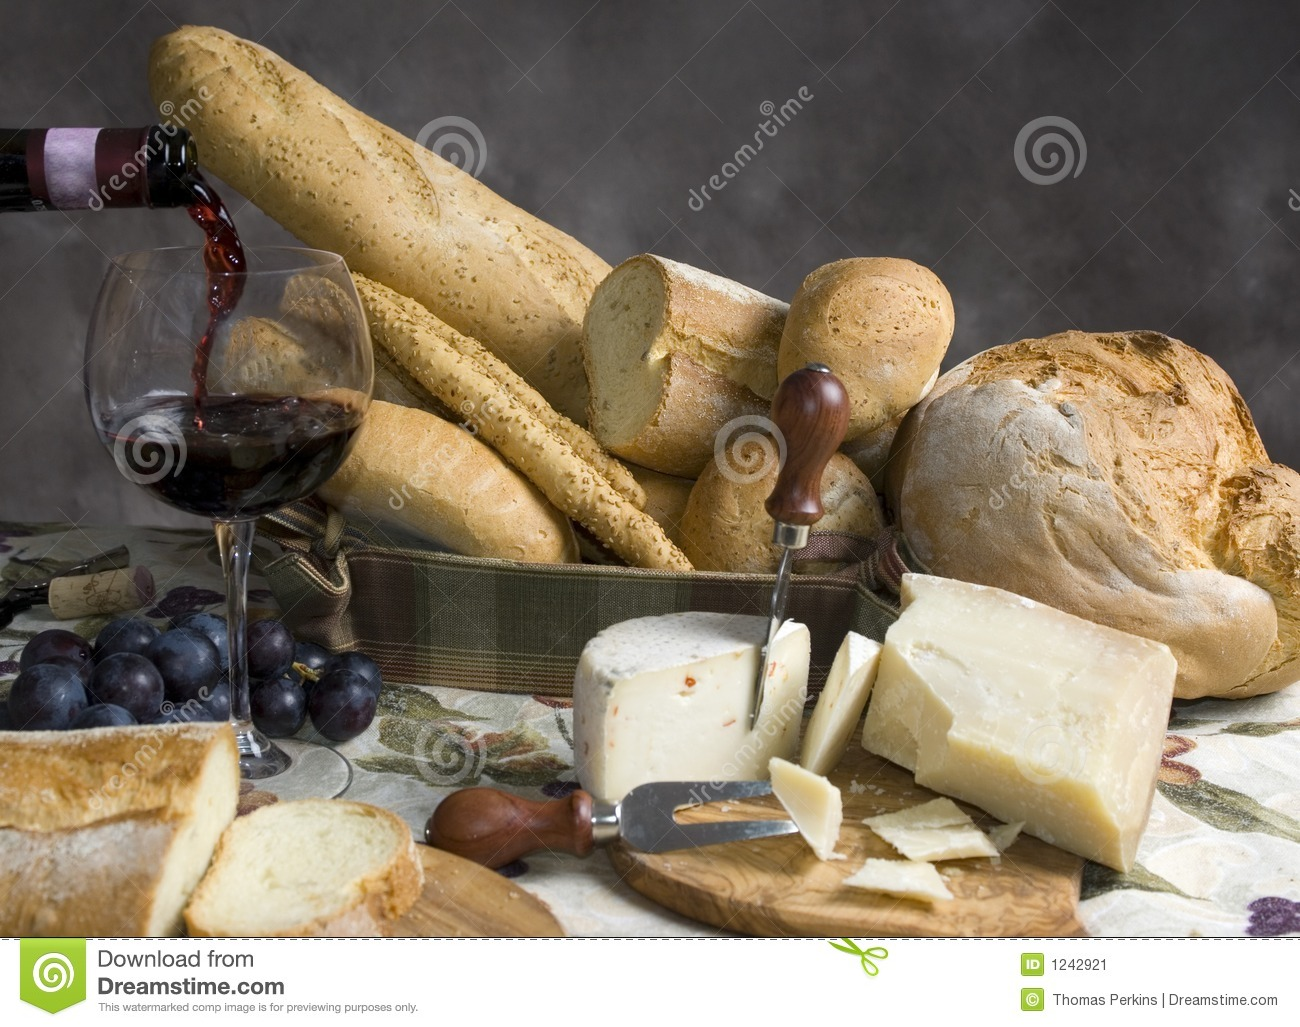 Bread and Cheese with a glass of wine 2